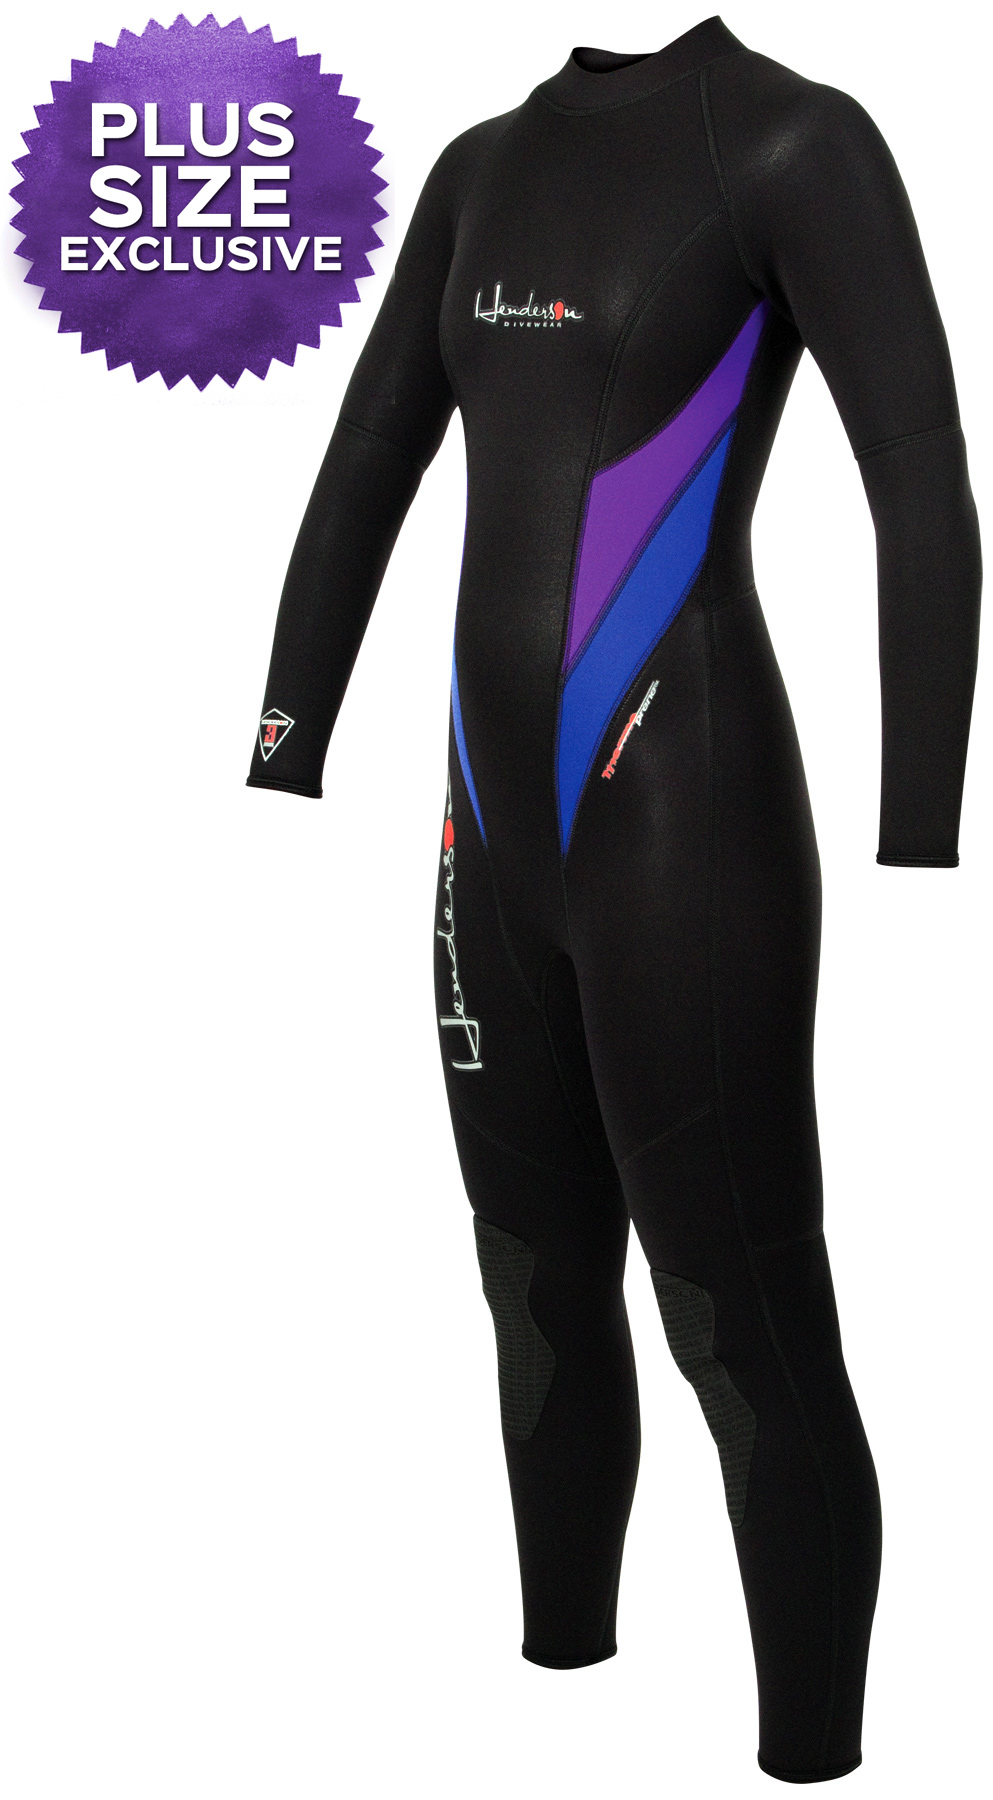 Henderson Thermoprene PLUS SIZE Women's 7mm Wetsuit Purple/Black